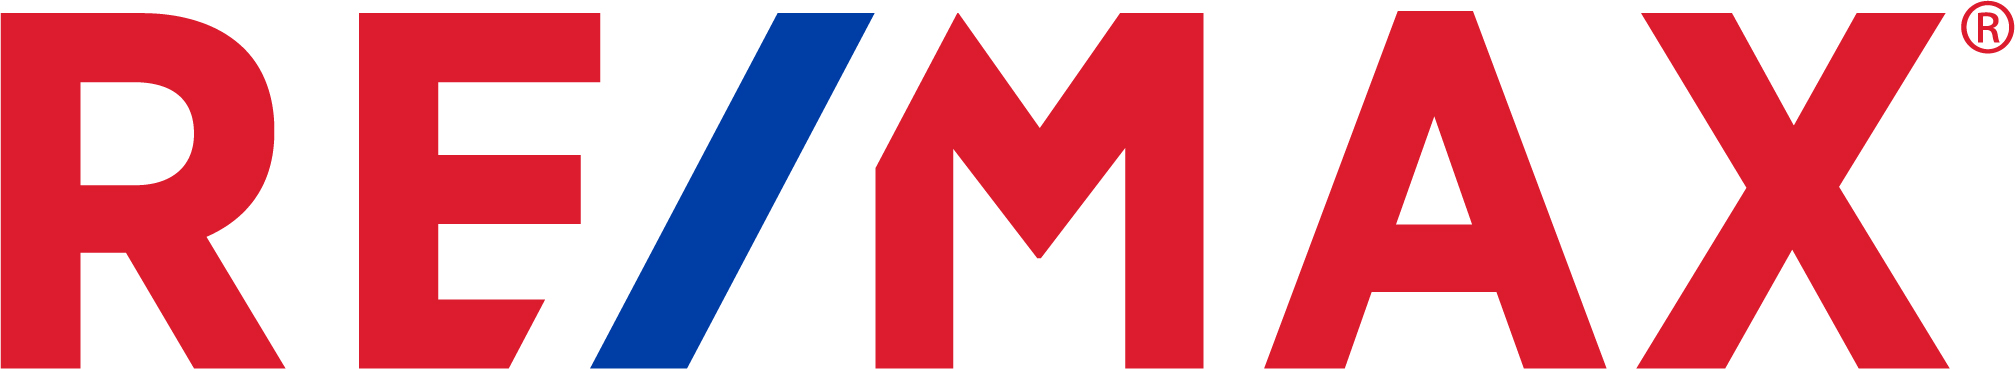 Re/Max, a Doral Chamber of Commerce member.